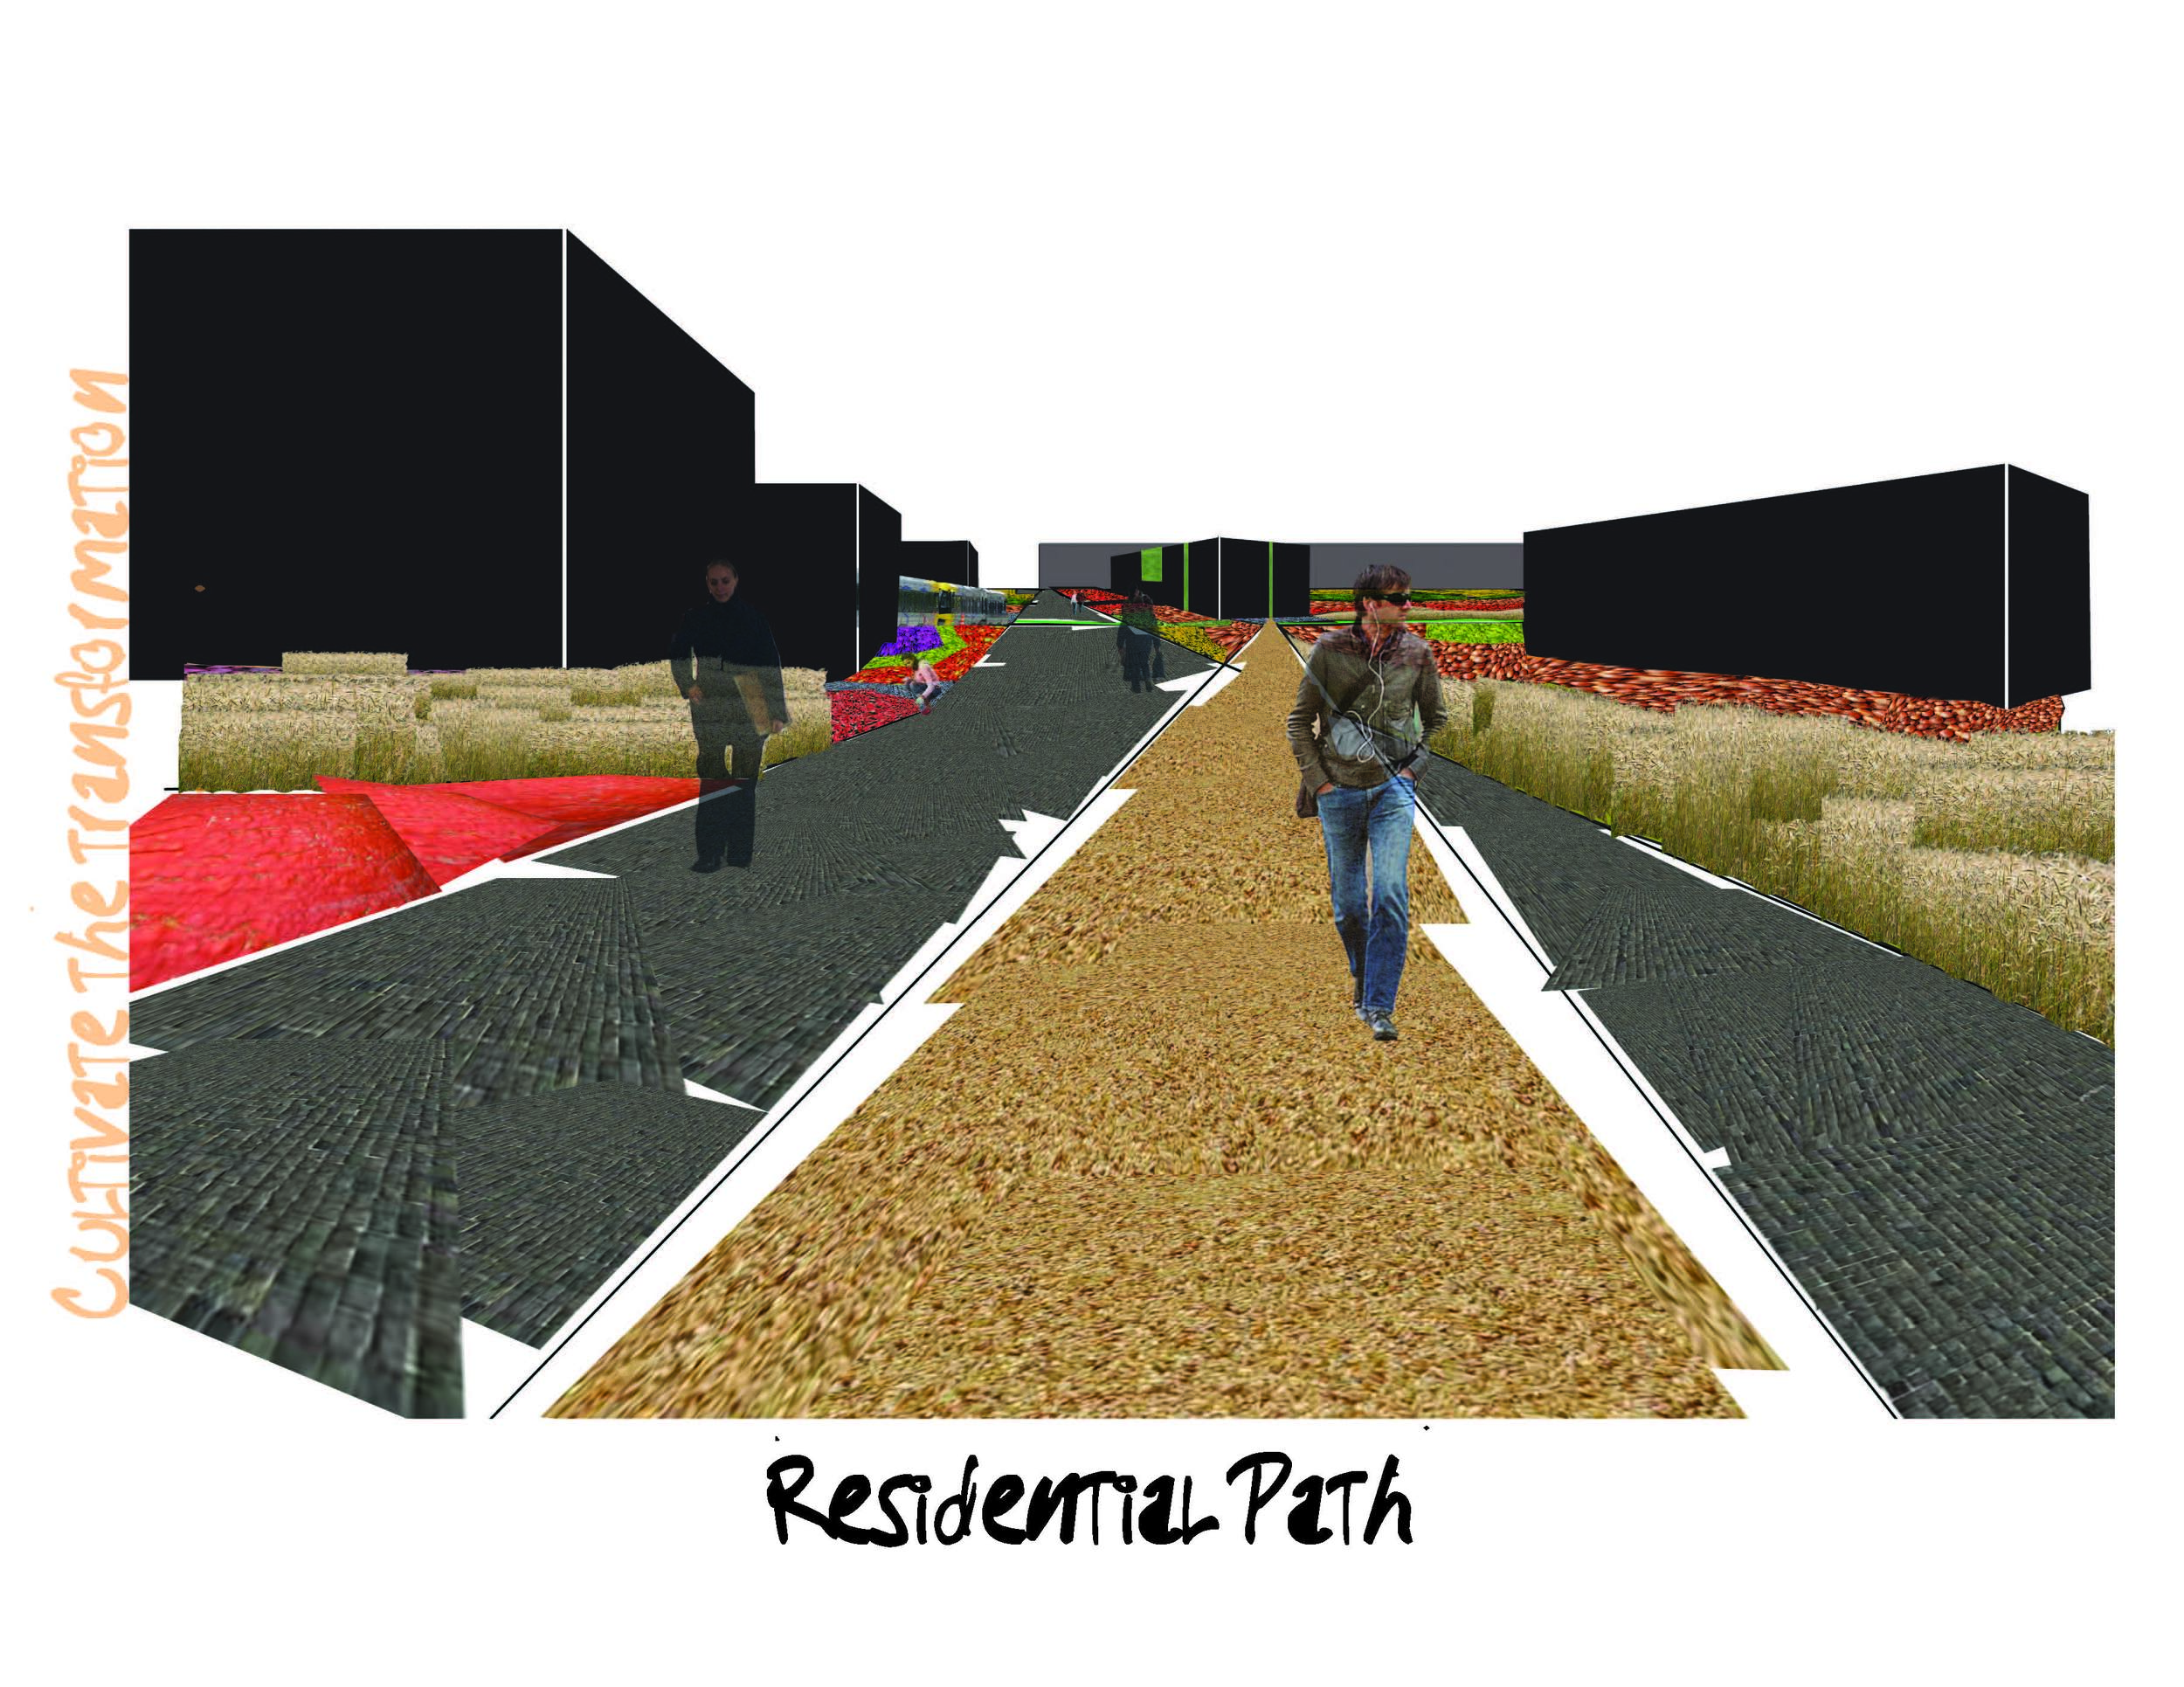 residential path perspective.jpg